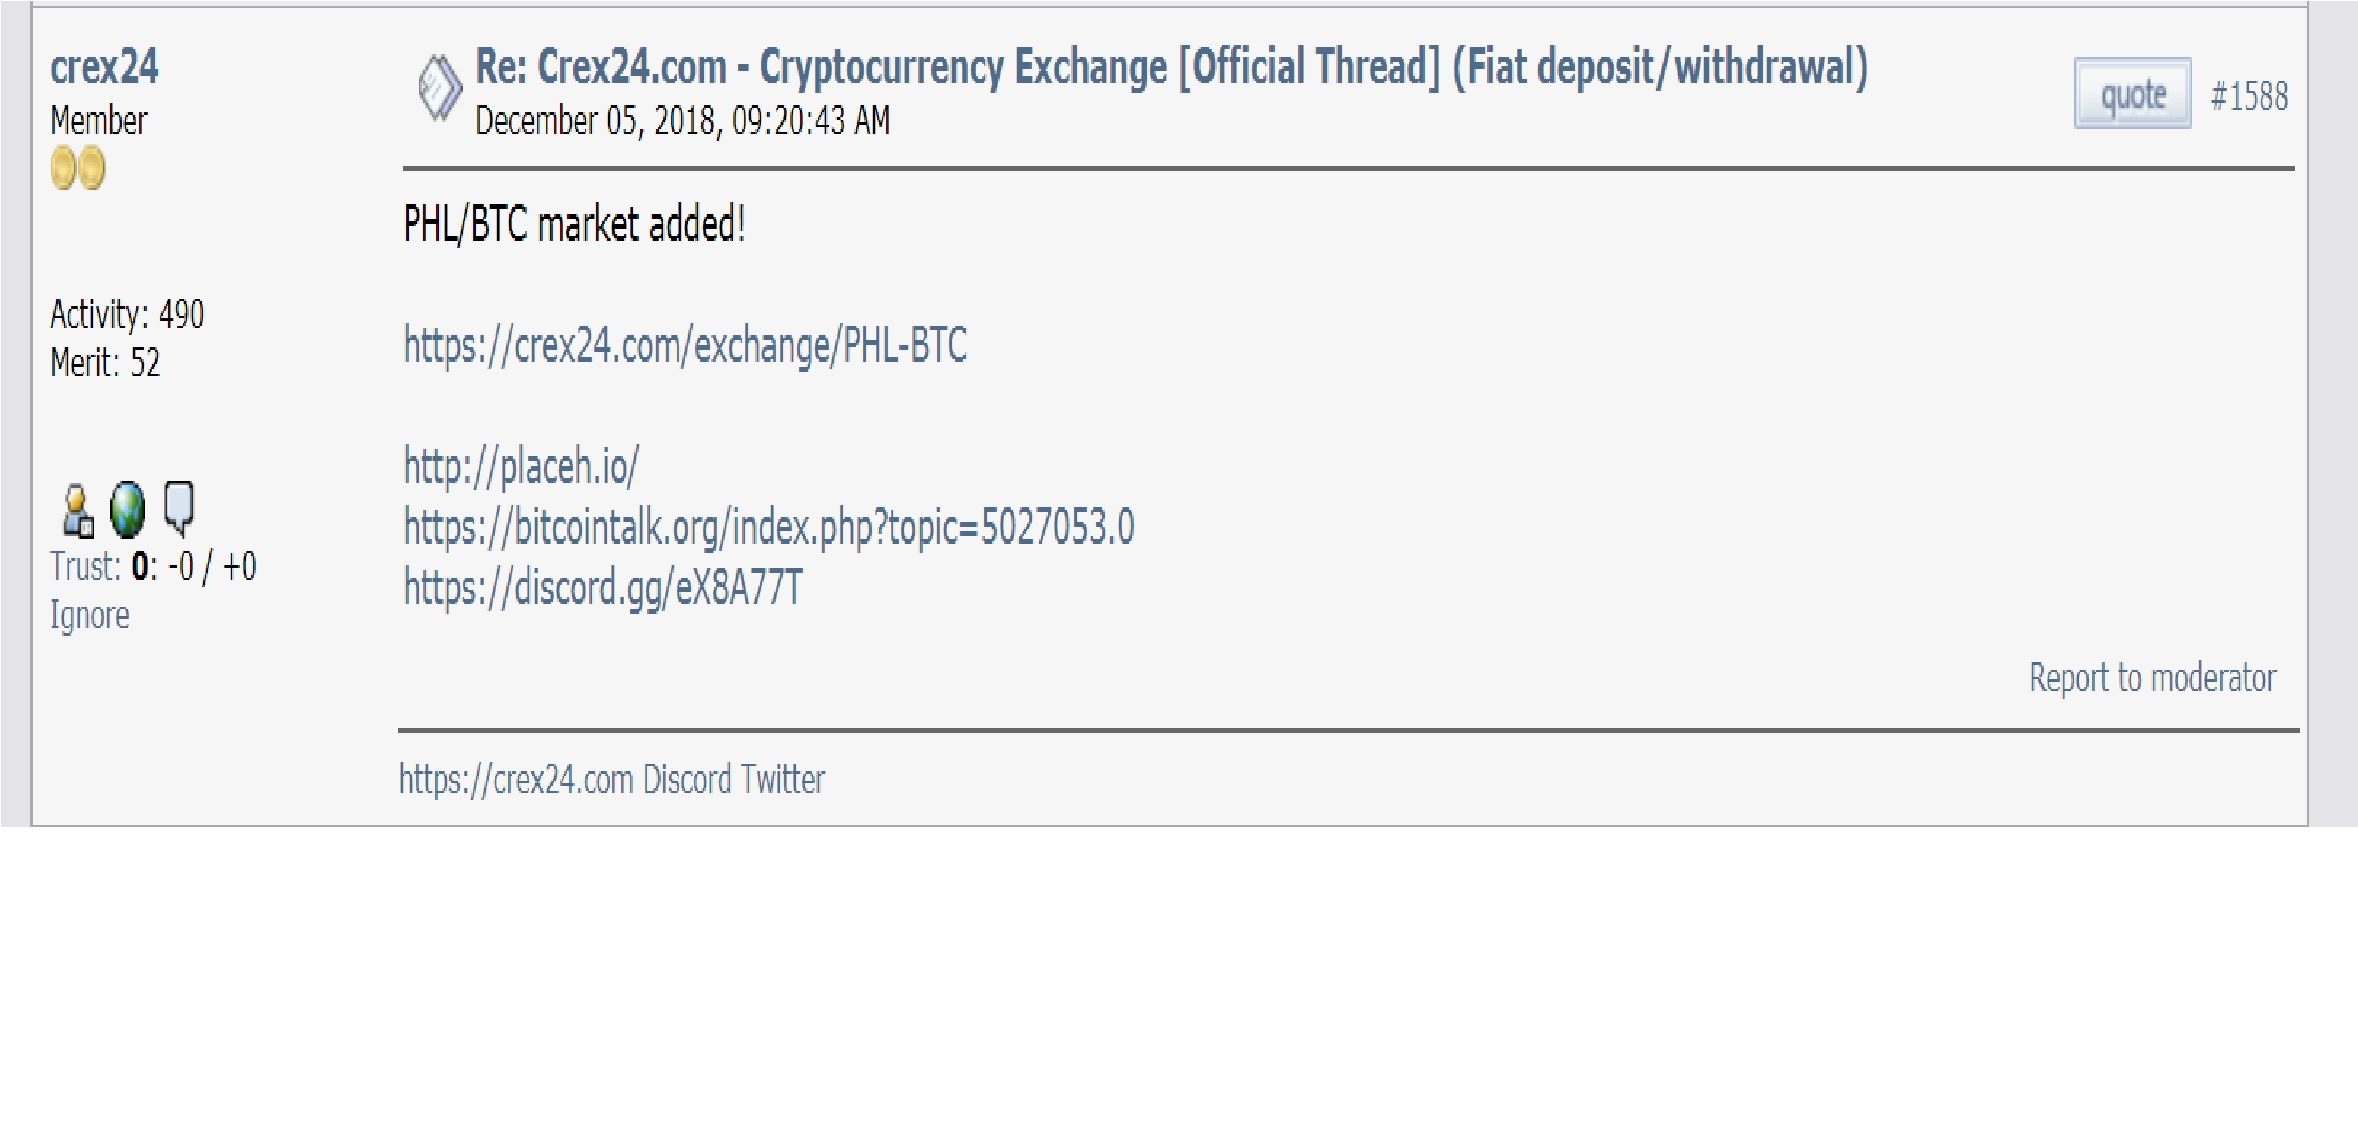 crex24.bitcointalk.jpg-(ann)(new Altcoin)(bounty/mining/coin Swap)-a Peer-to-peer Electronic Artifact Storage System